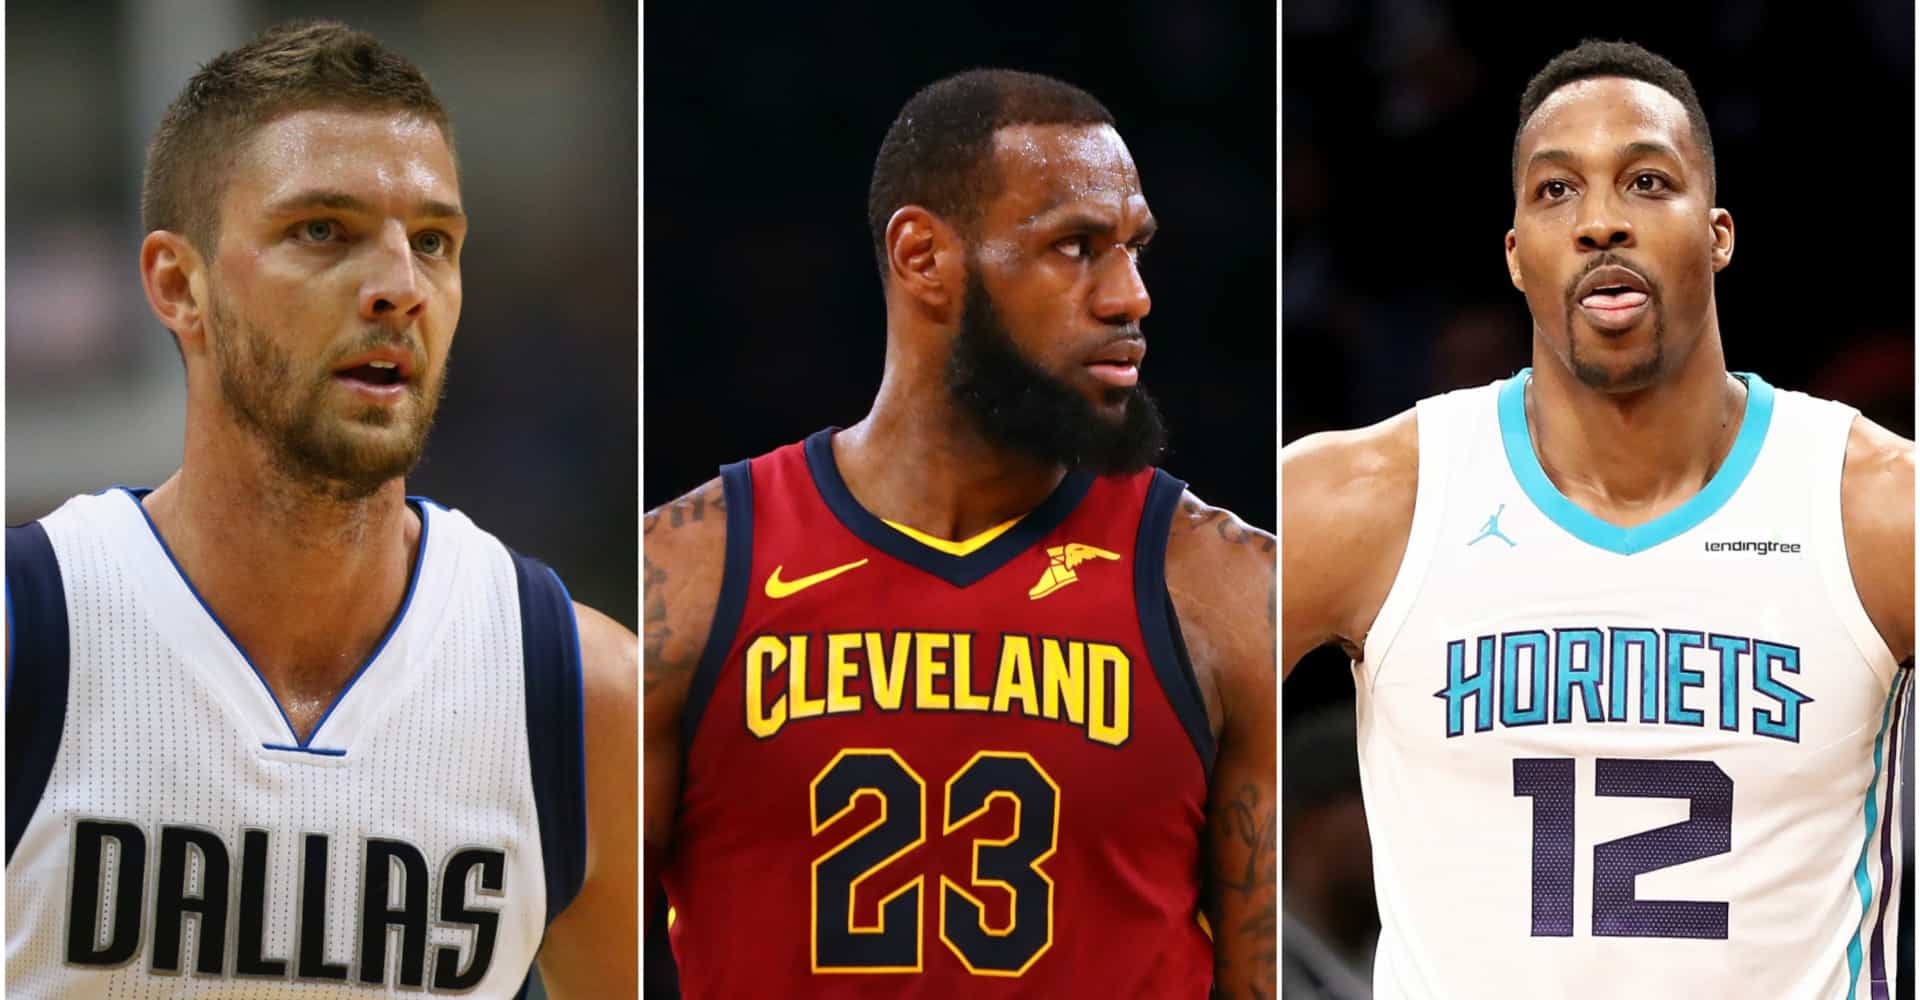 The world's hottest basketball players